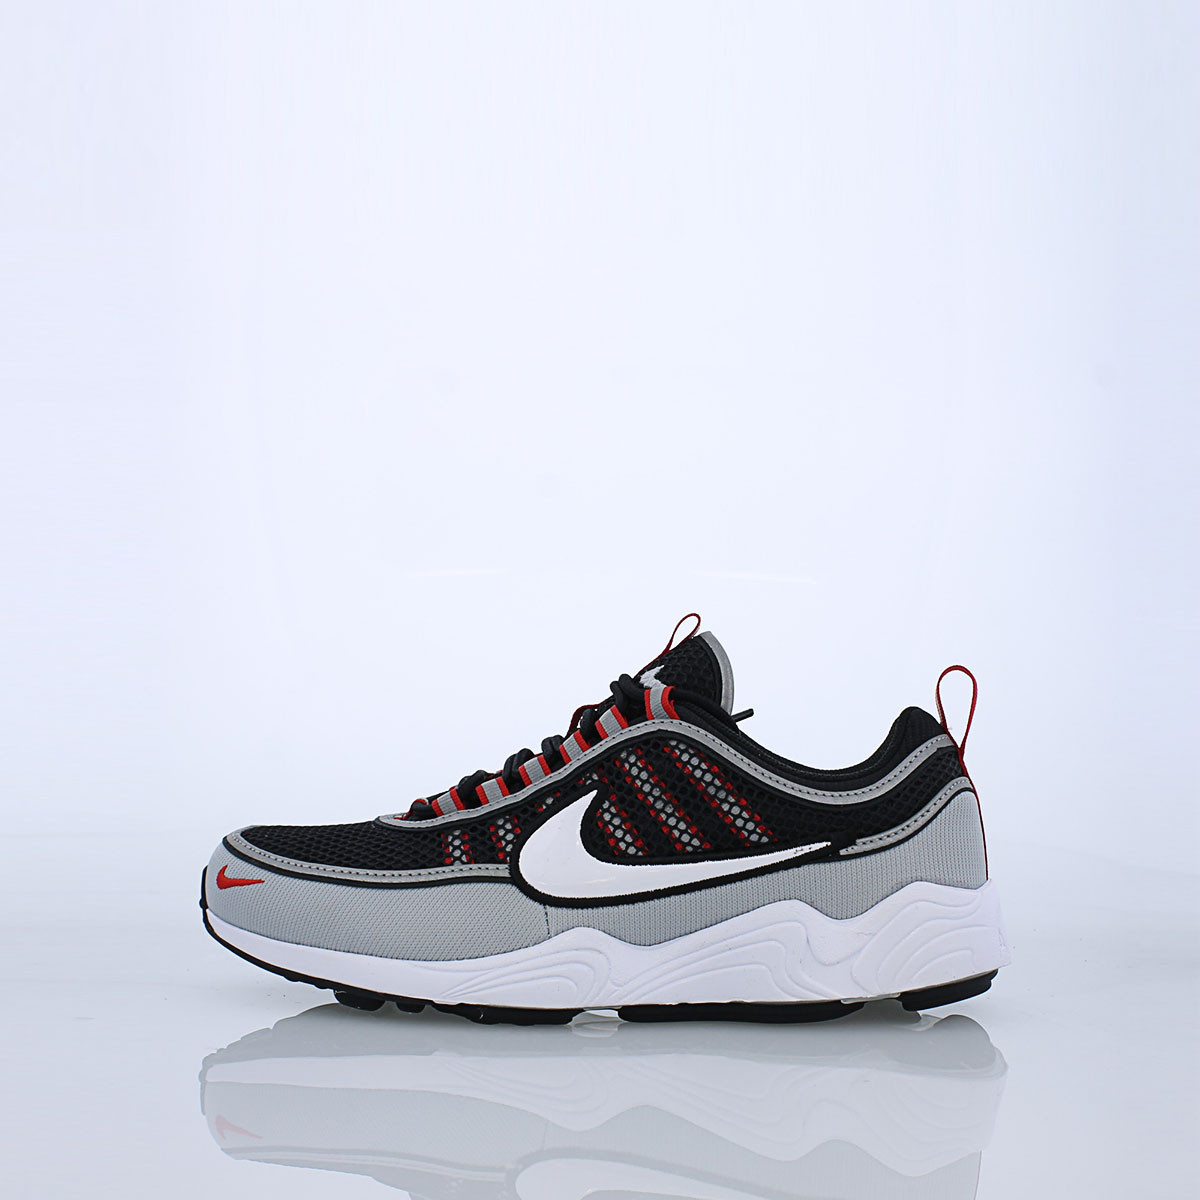 NIKE AIR ZOOM SPIRIDON '16 'WHITE/RED' (CLICK TO BUY)